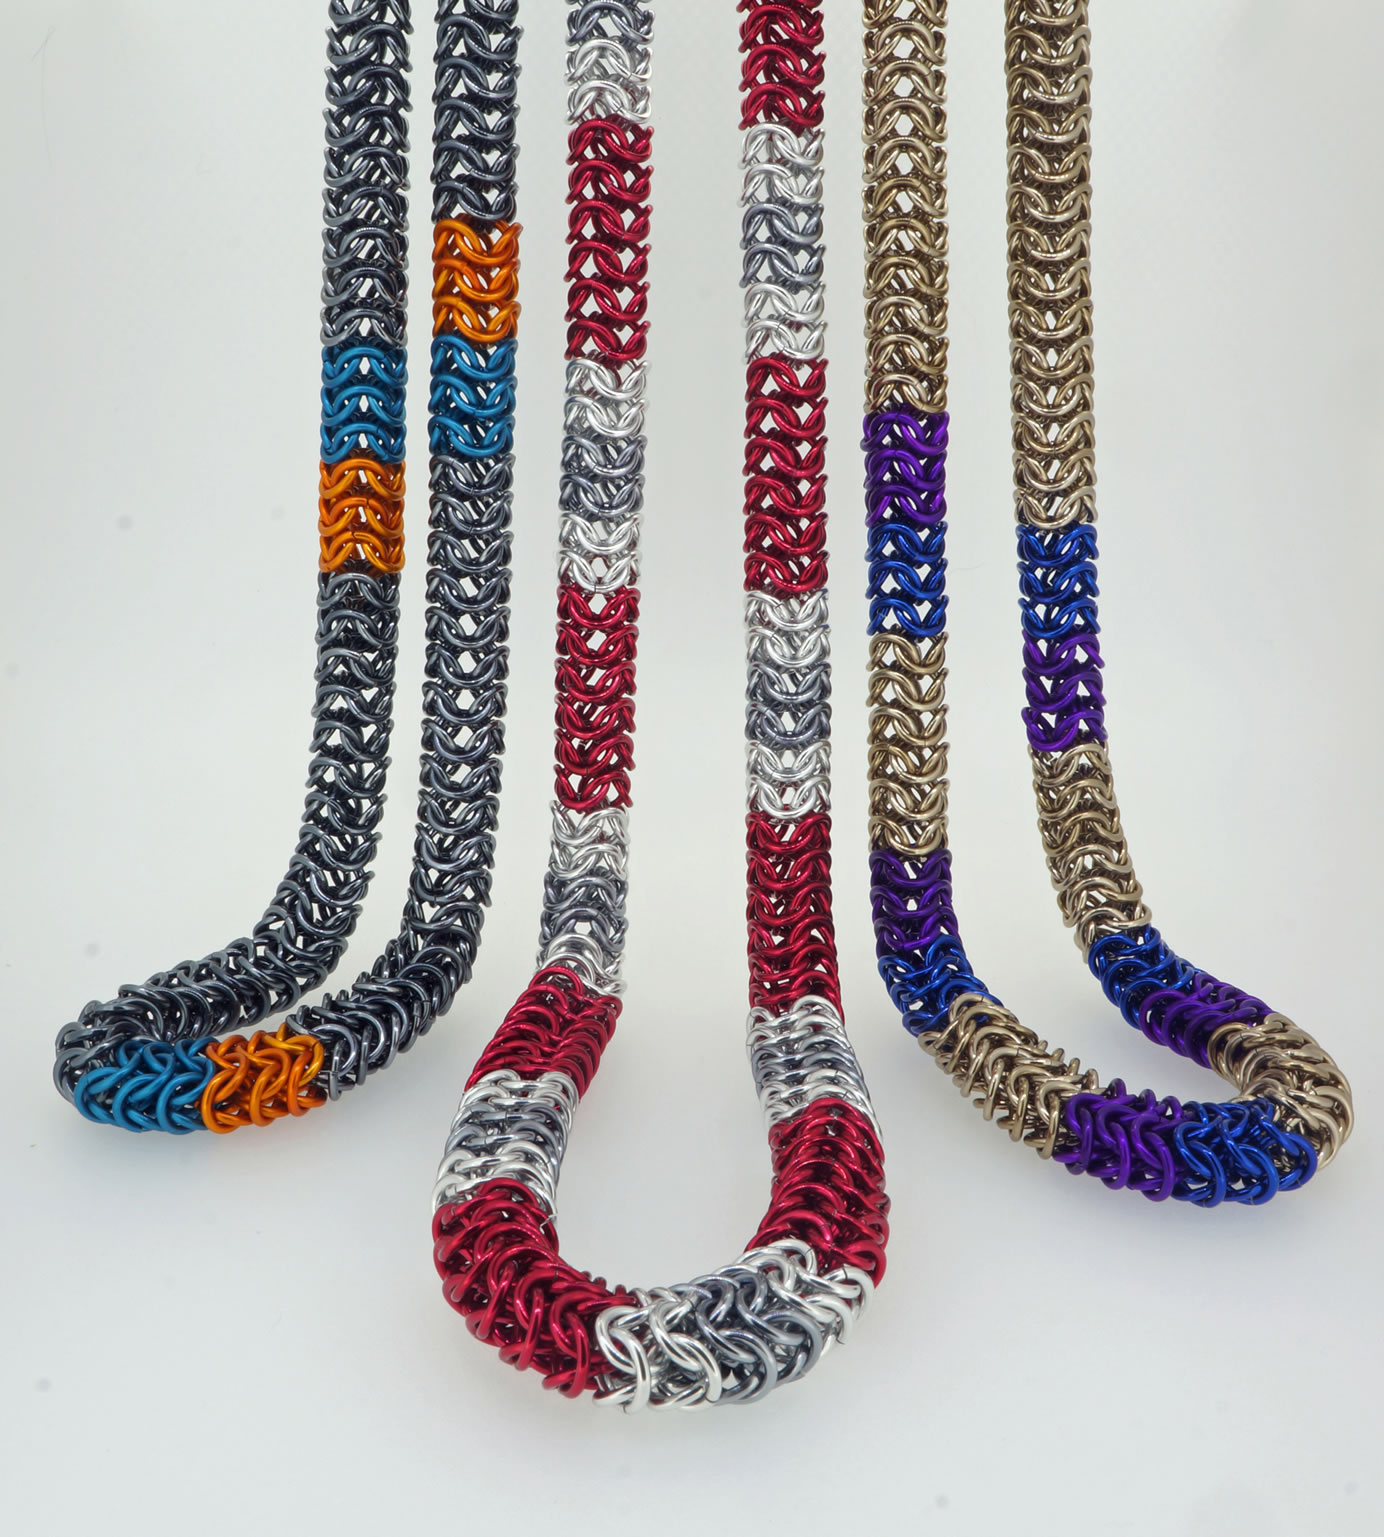 Banded Rope Necklaces